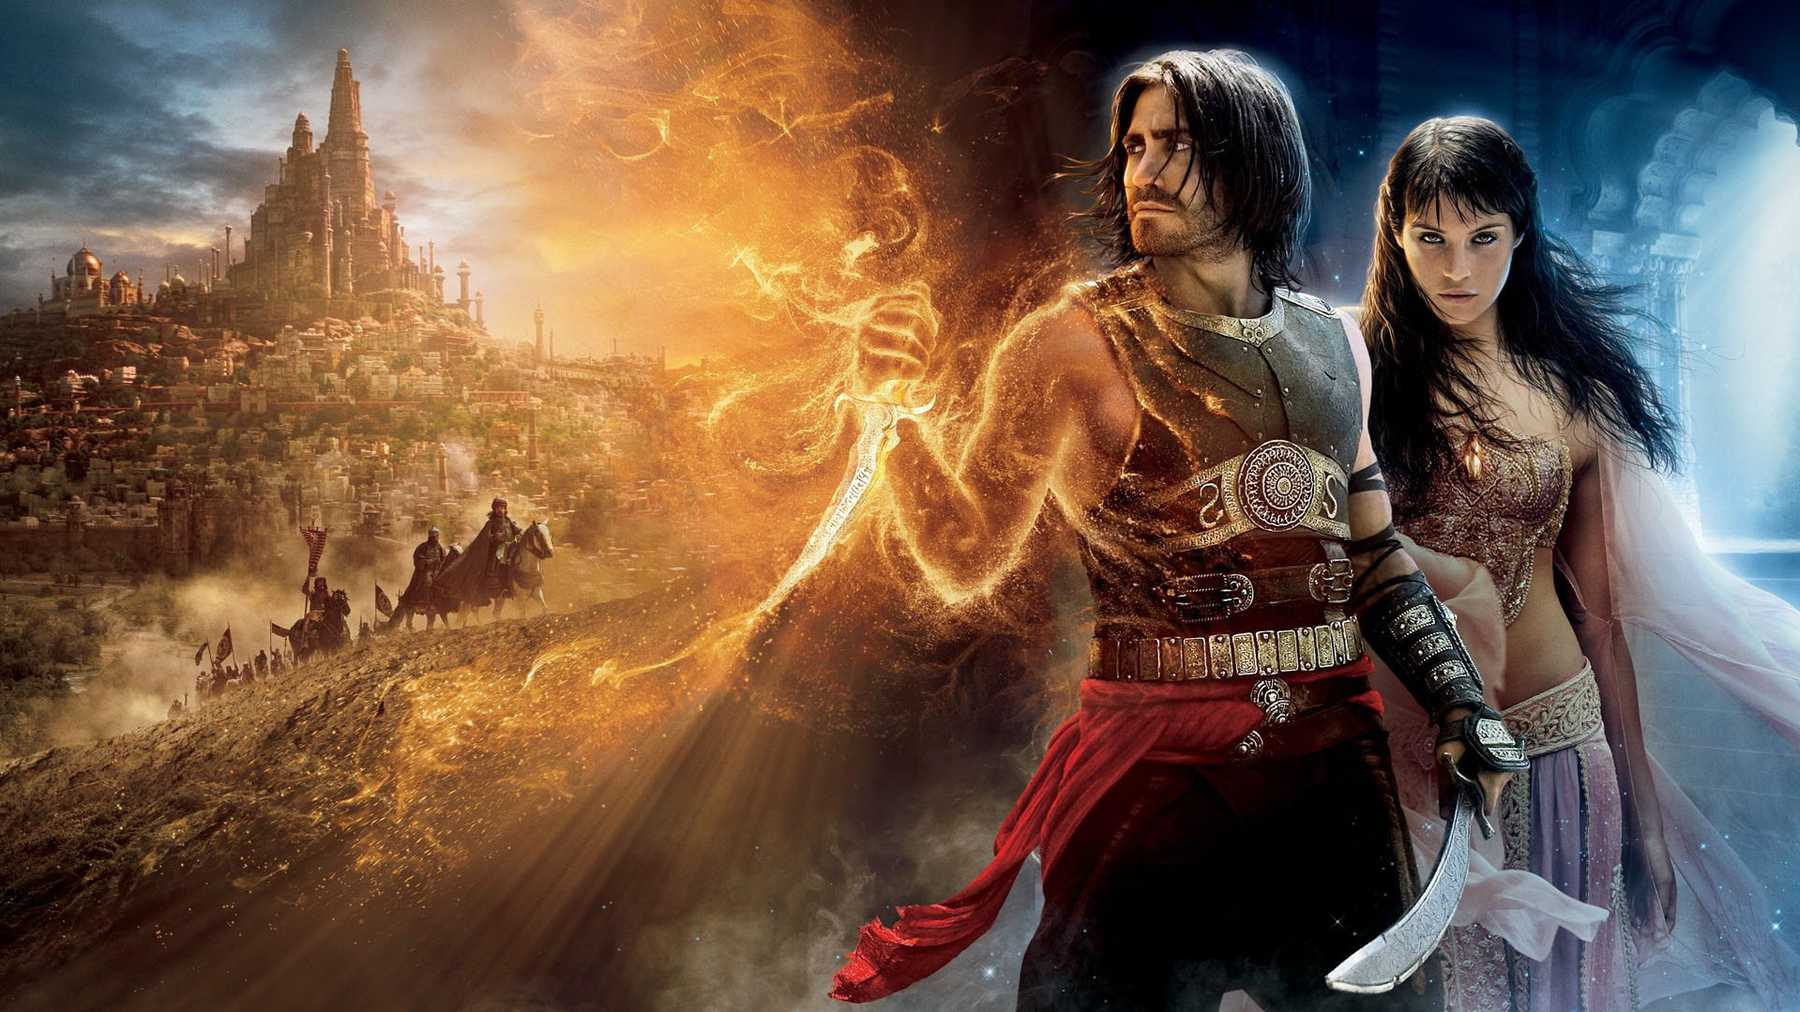 Prince Of Persia The Sands Of Time Review Movie Empire